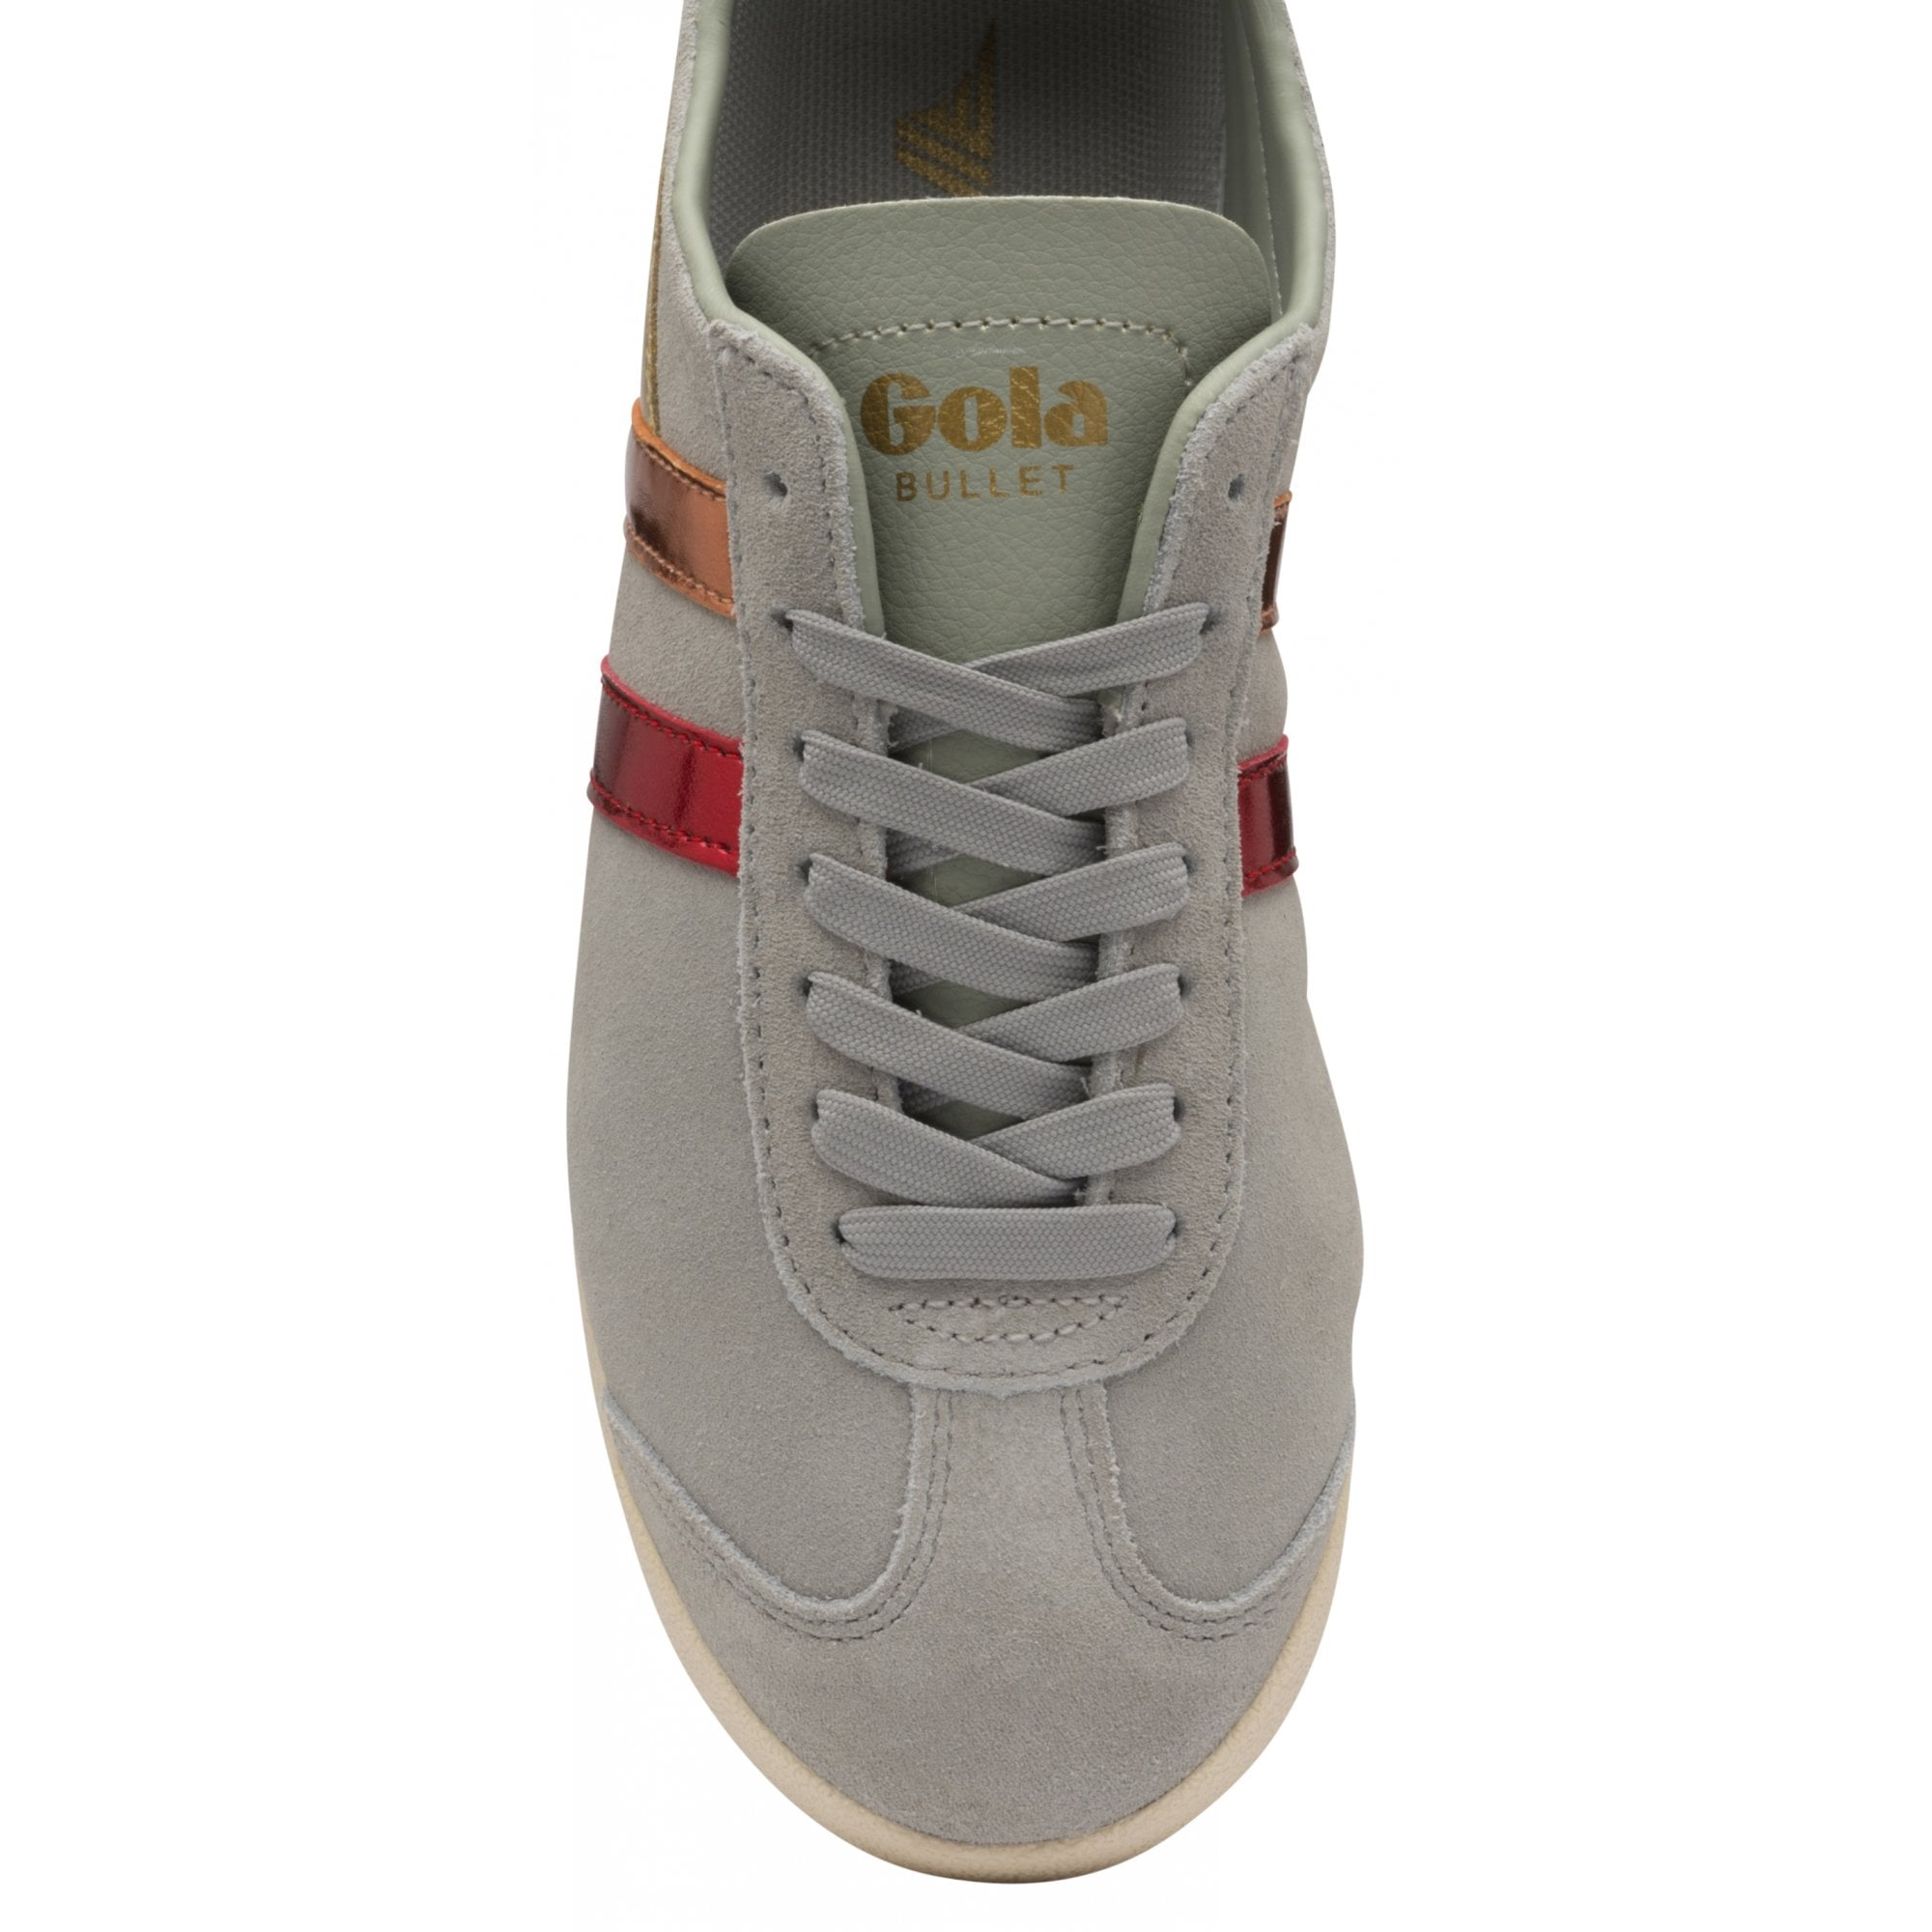 Buy Gola womens Bullet Flare trainers